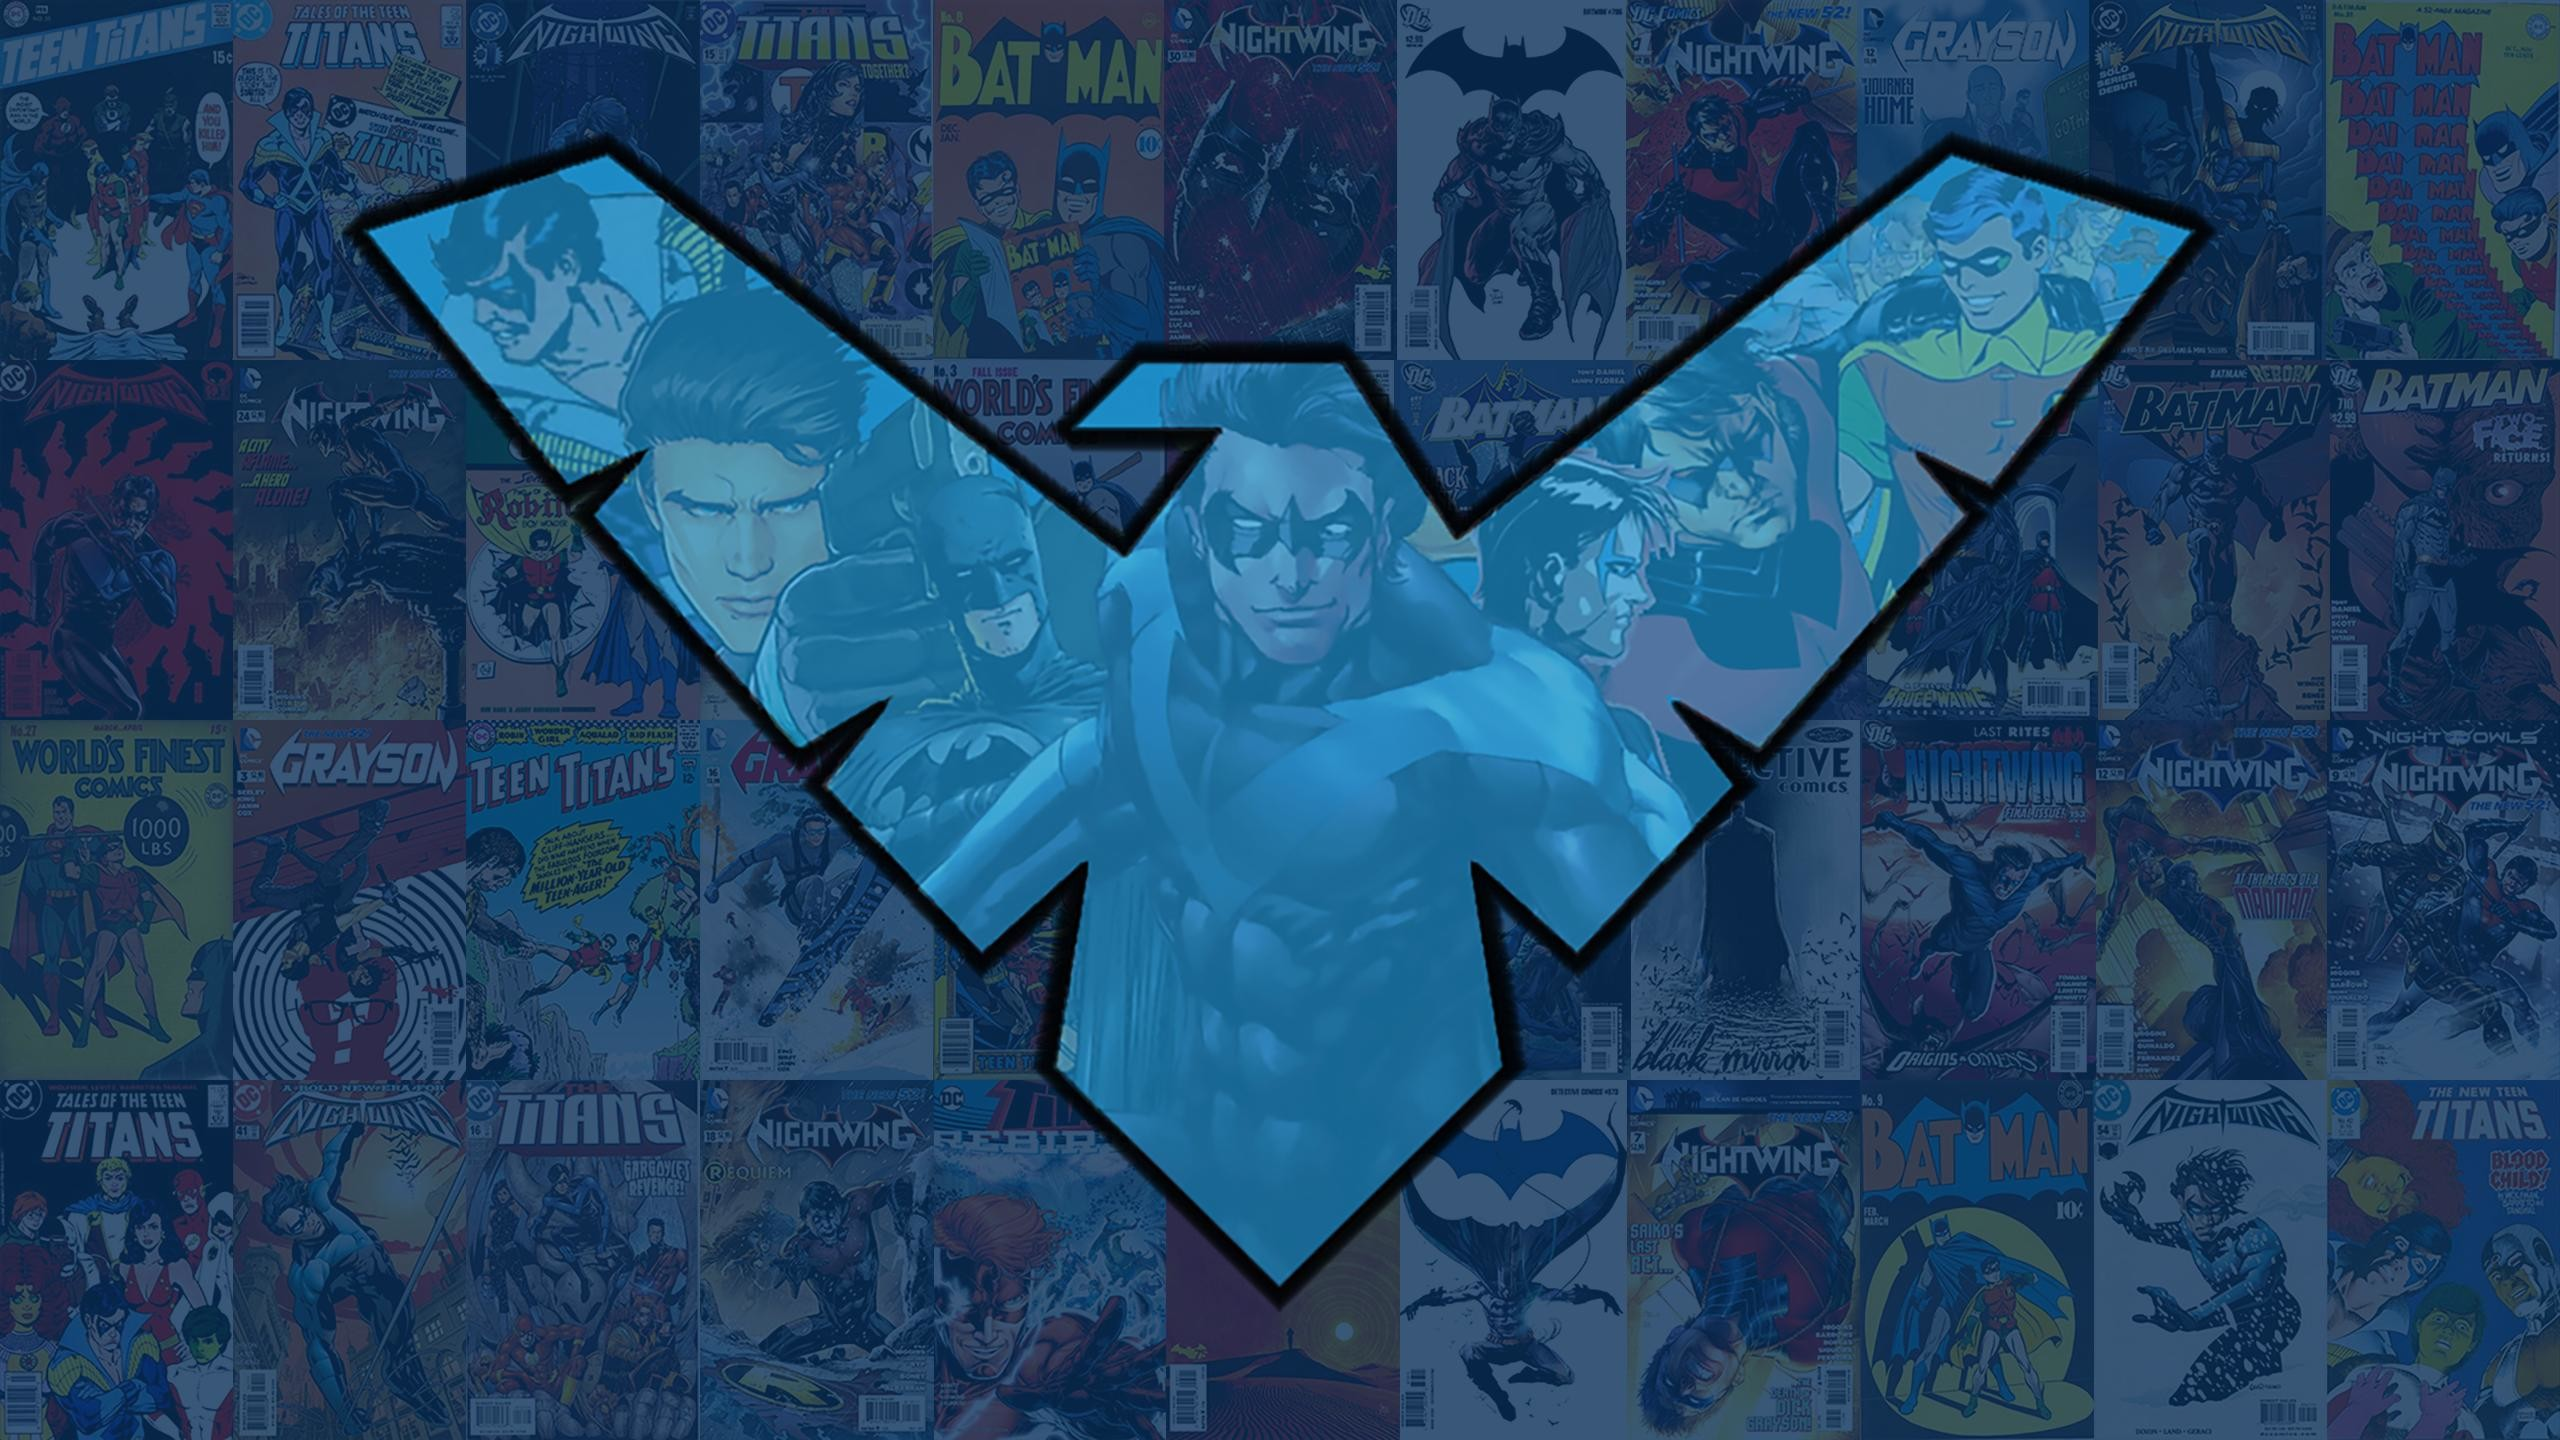 Res: 2560x1440, I made some Nightwing wallpapers for desktops and phones in the style of  the Flash ones I made last week.